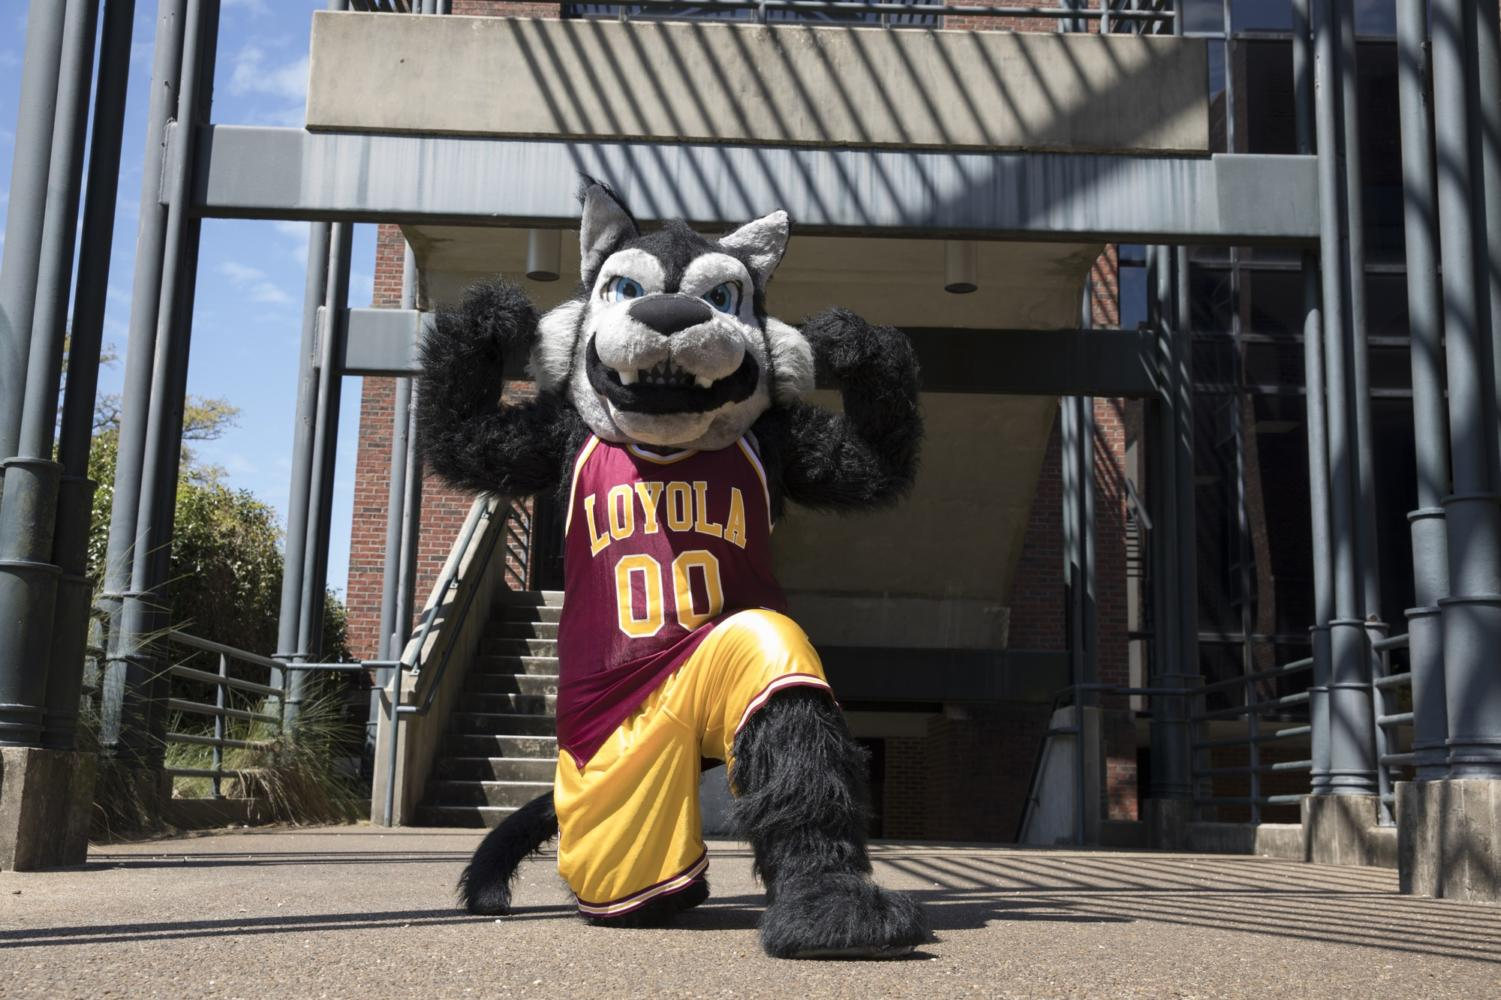 Havoc the Wolf has served as Loyola's mascot since 2006 after a re-branding by the Loyola New Orleans Athletic department. Loyola has featured a wolf mascot, either live and costumed student, since 1928. Photo credit: Cristian Orellana